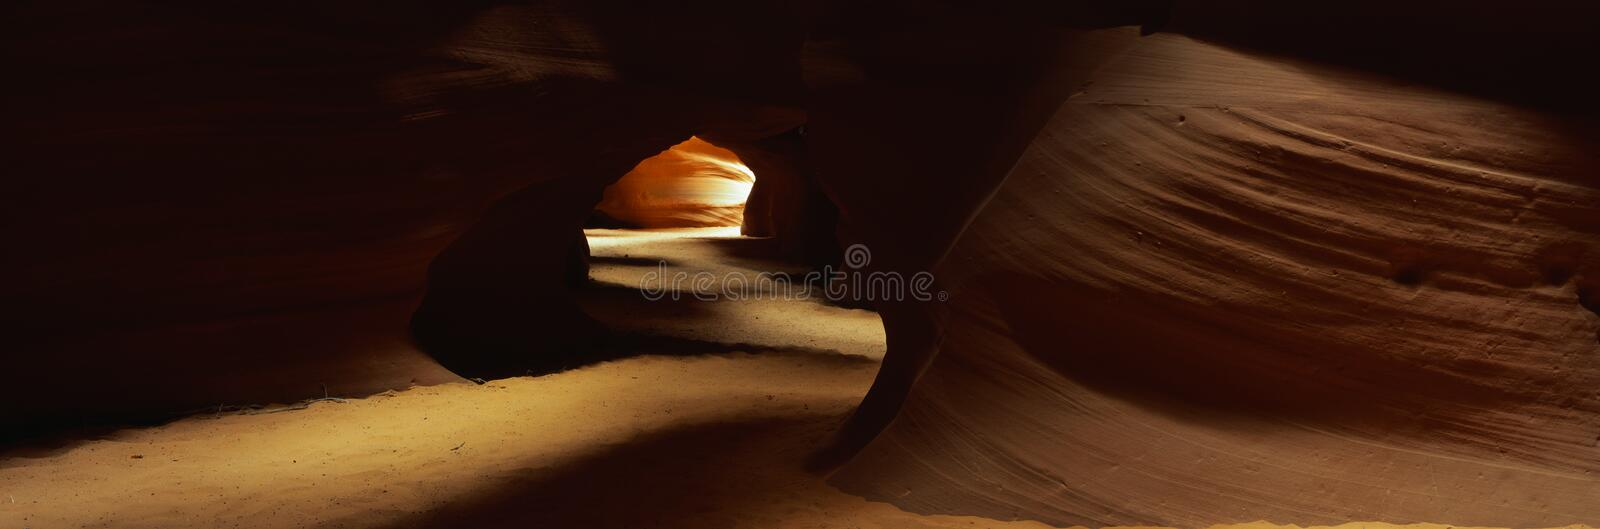 Gorge de fente, Arizona image stock